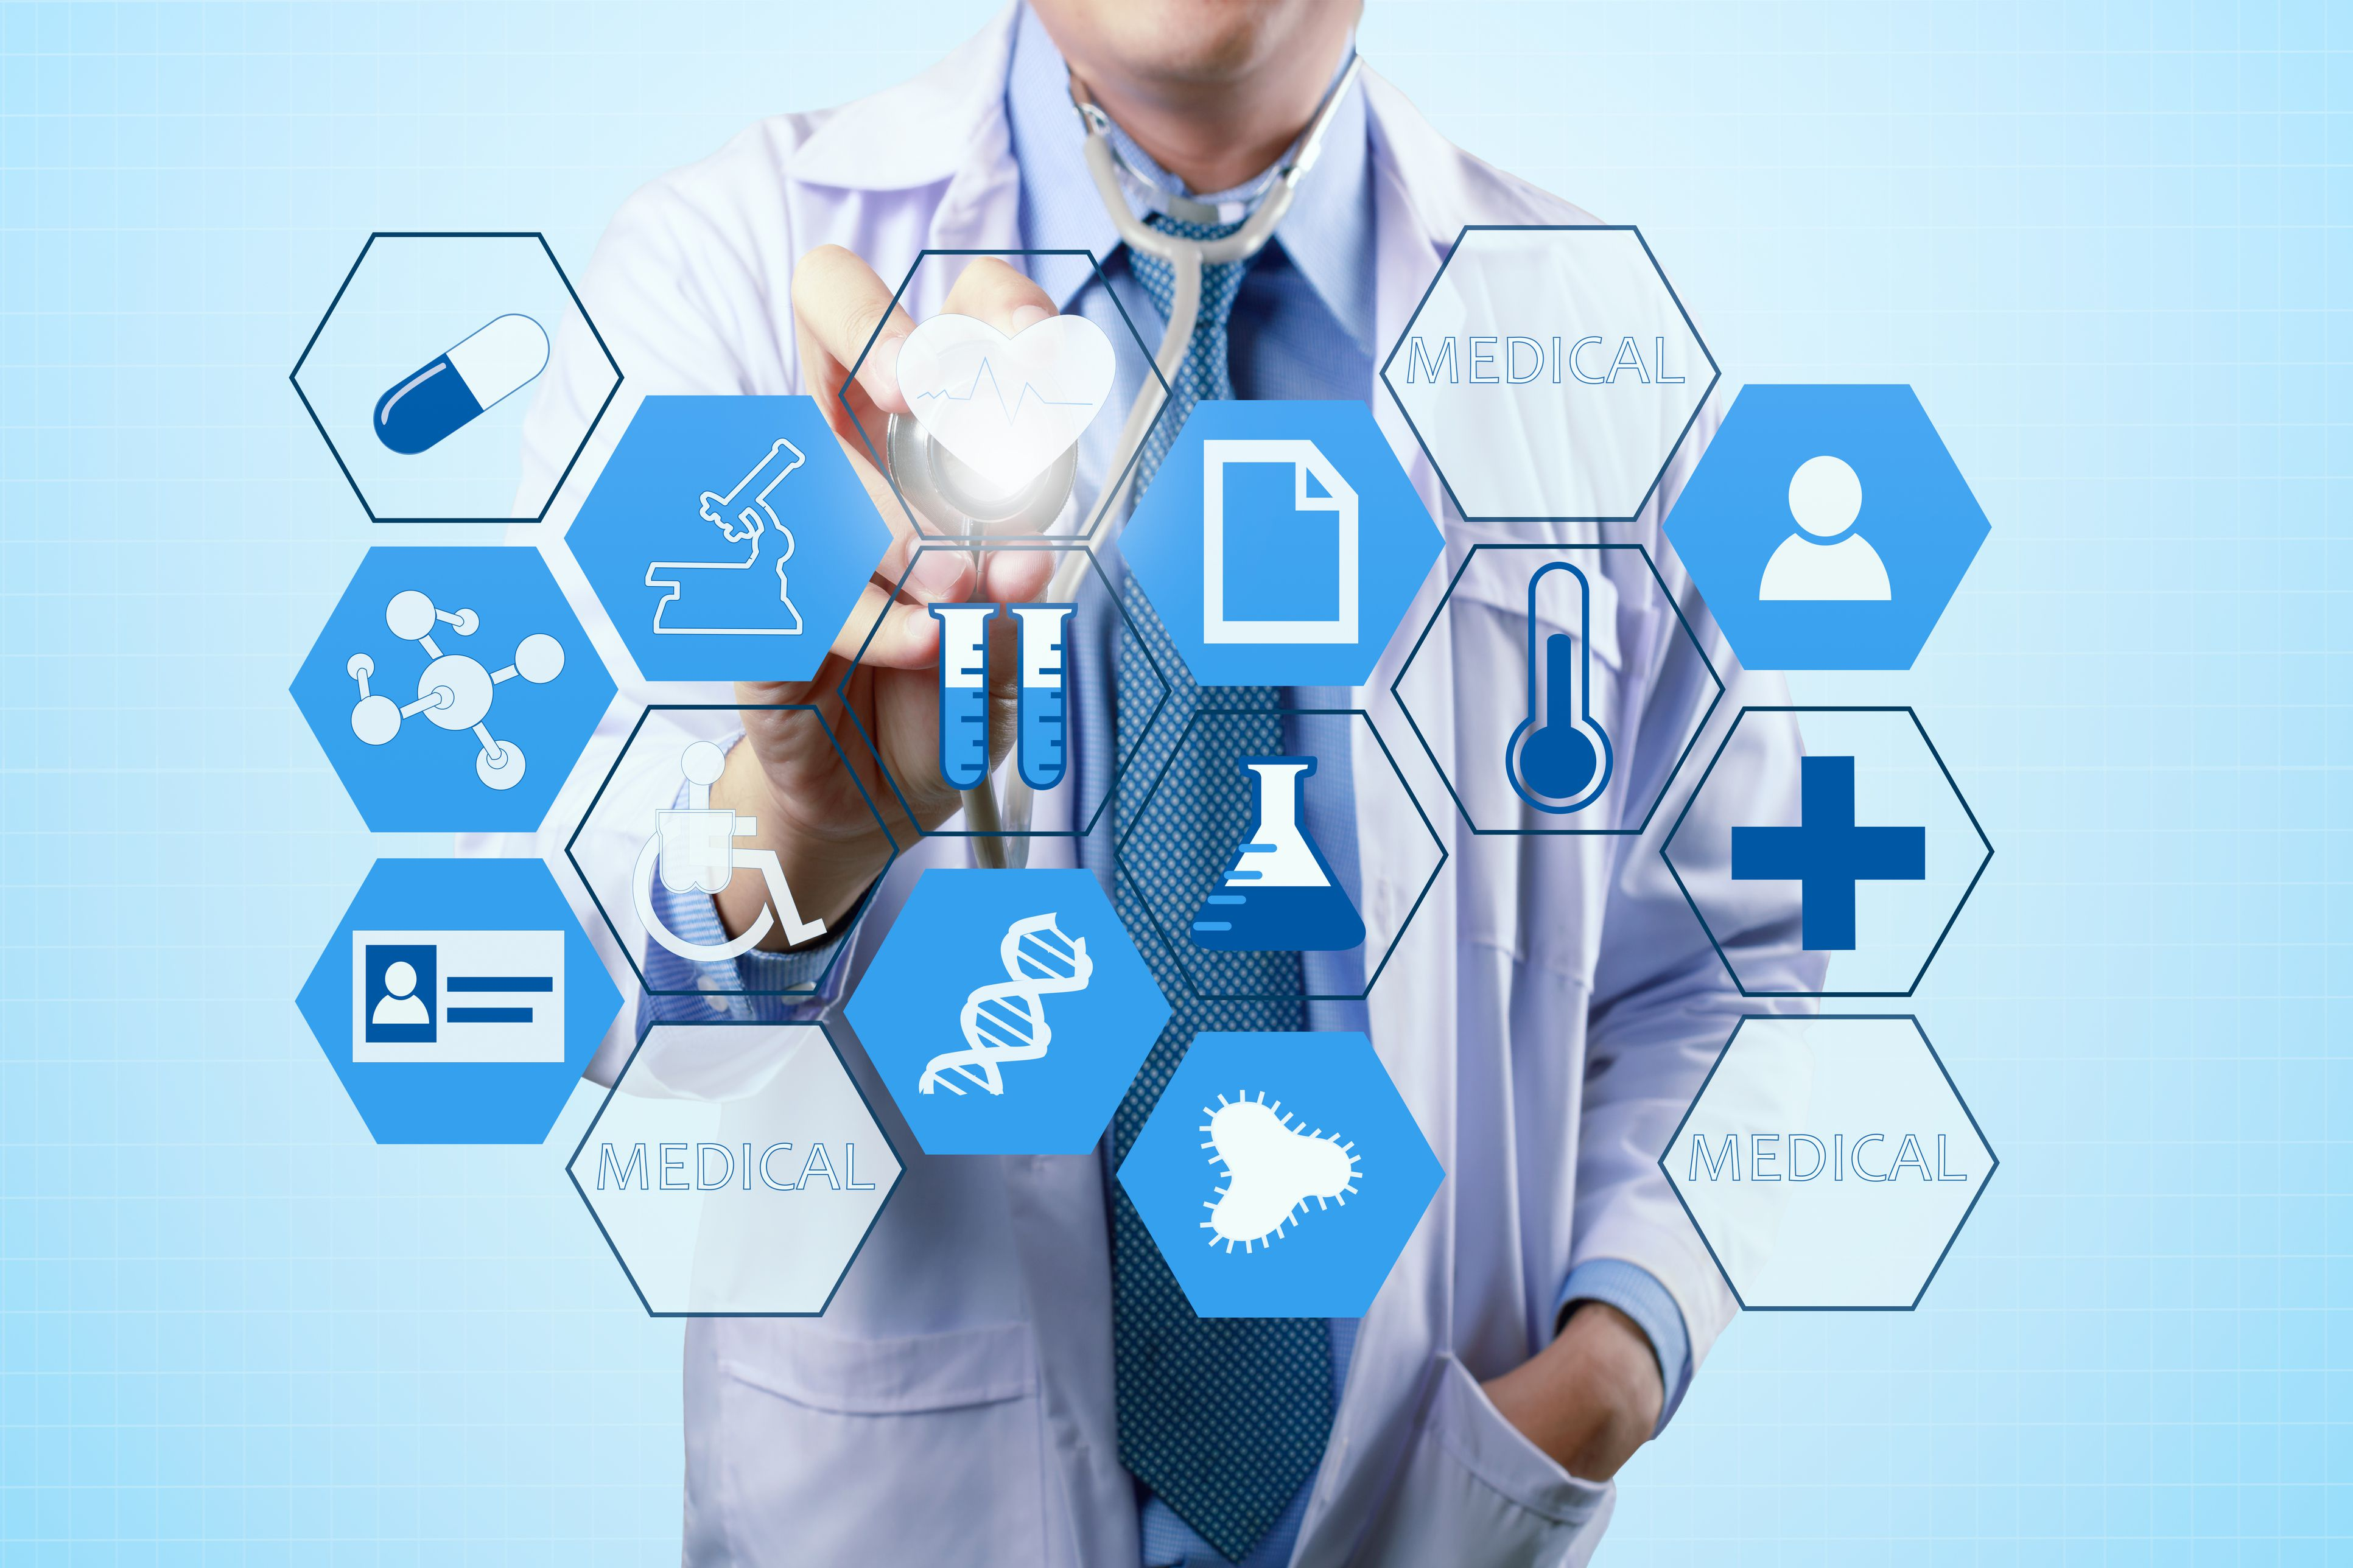 The Top Health Care Companies in the World